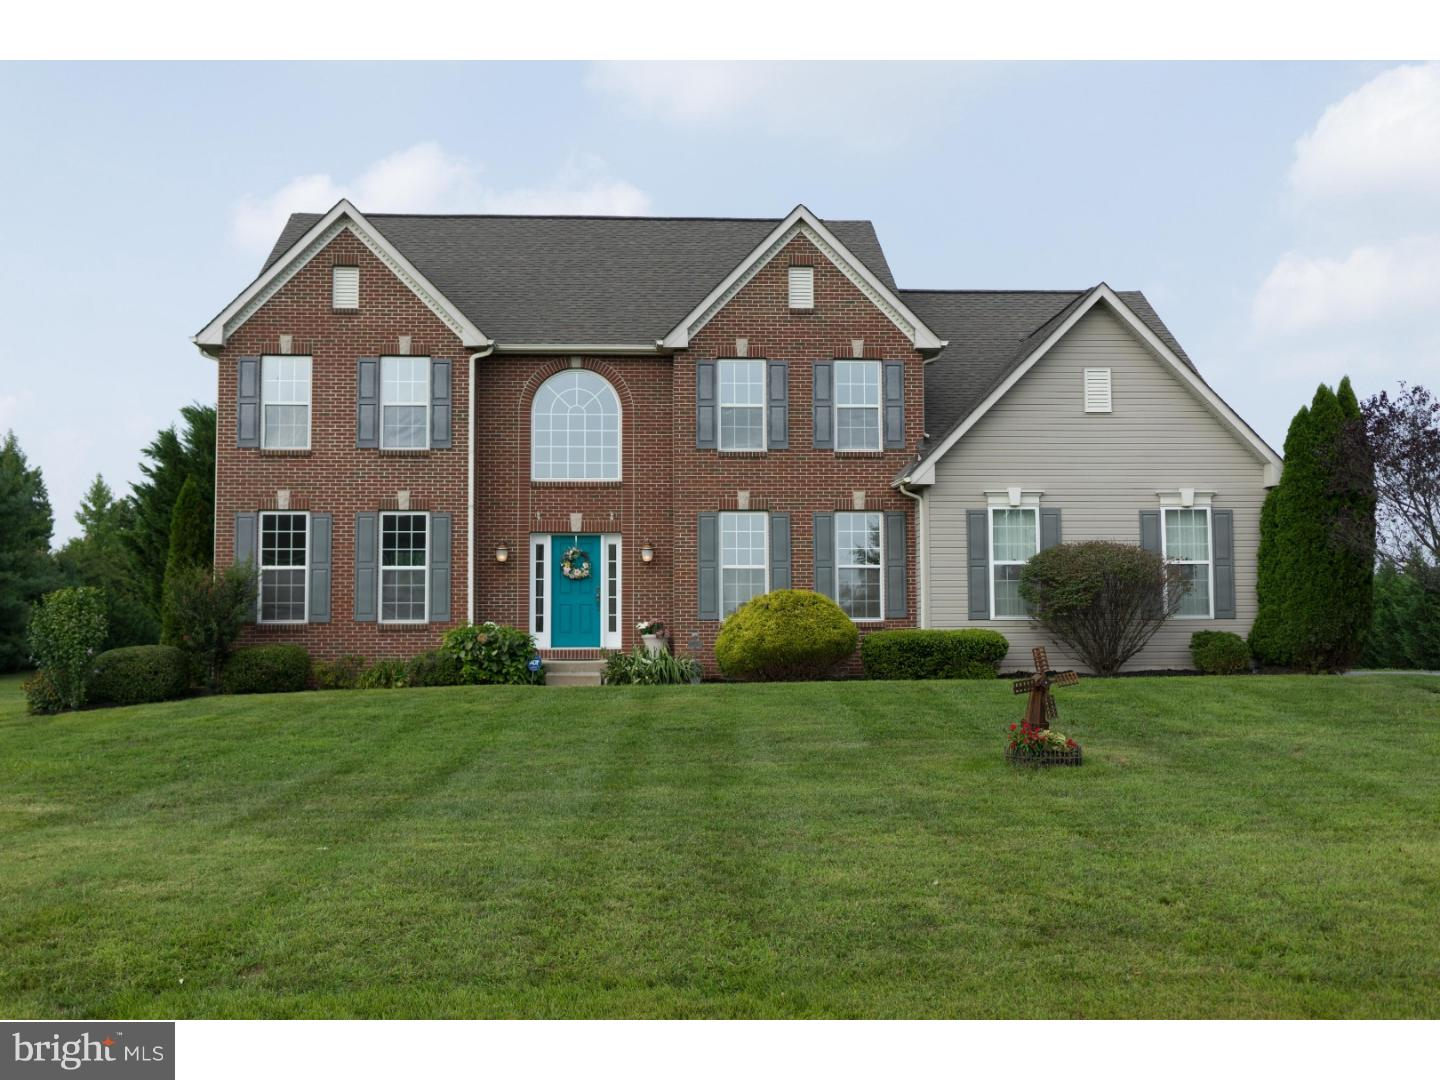 Single Family Home for Sale at 106 COVENTRY Lane Swedesboro, New Jersey 08085 United States